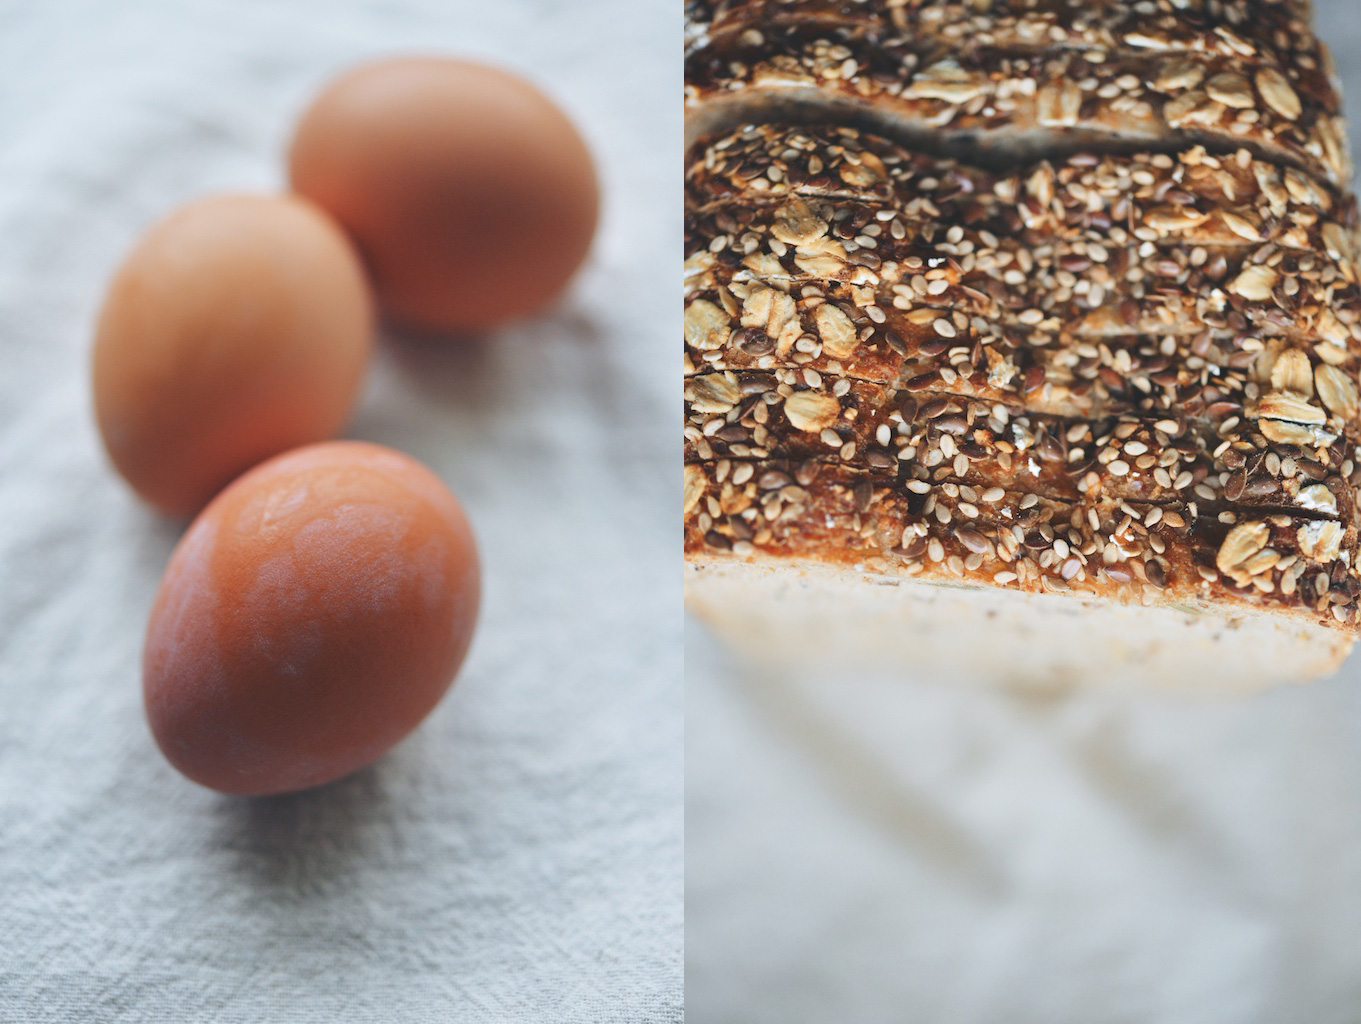 eggs and seed bread